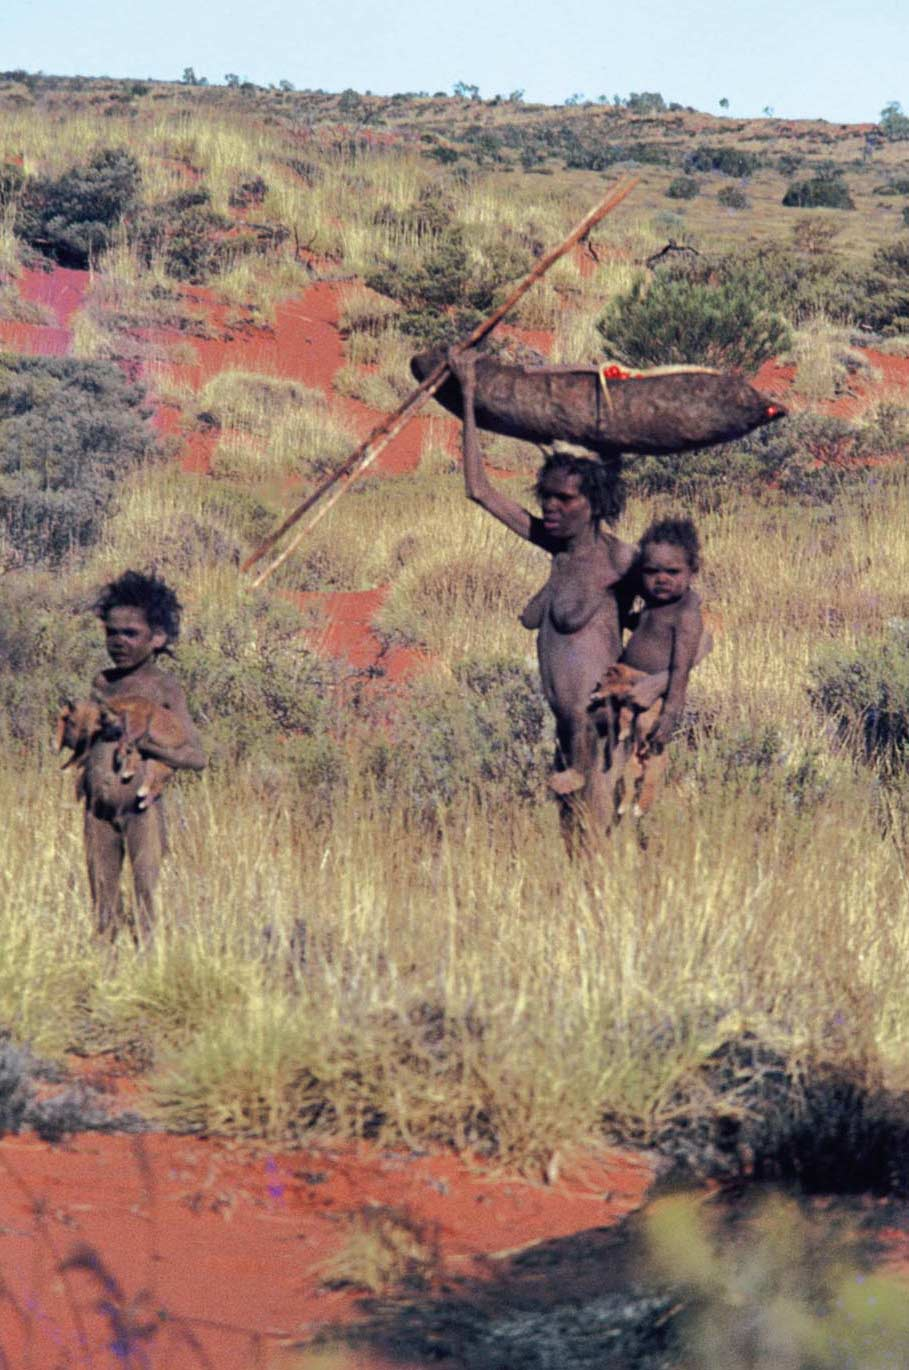 A woman standing in the bush with a wooden vessel on her head. She is carrying a baby and a young child is standing nearby and holding what appears to be two dingo puppies. - click to view larger image